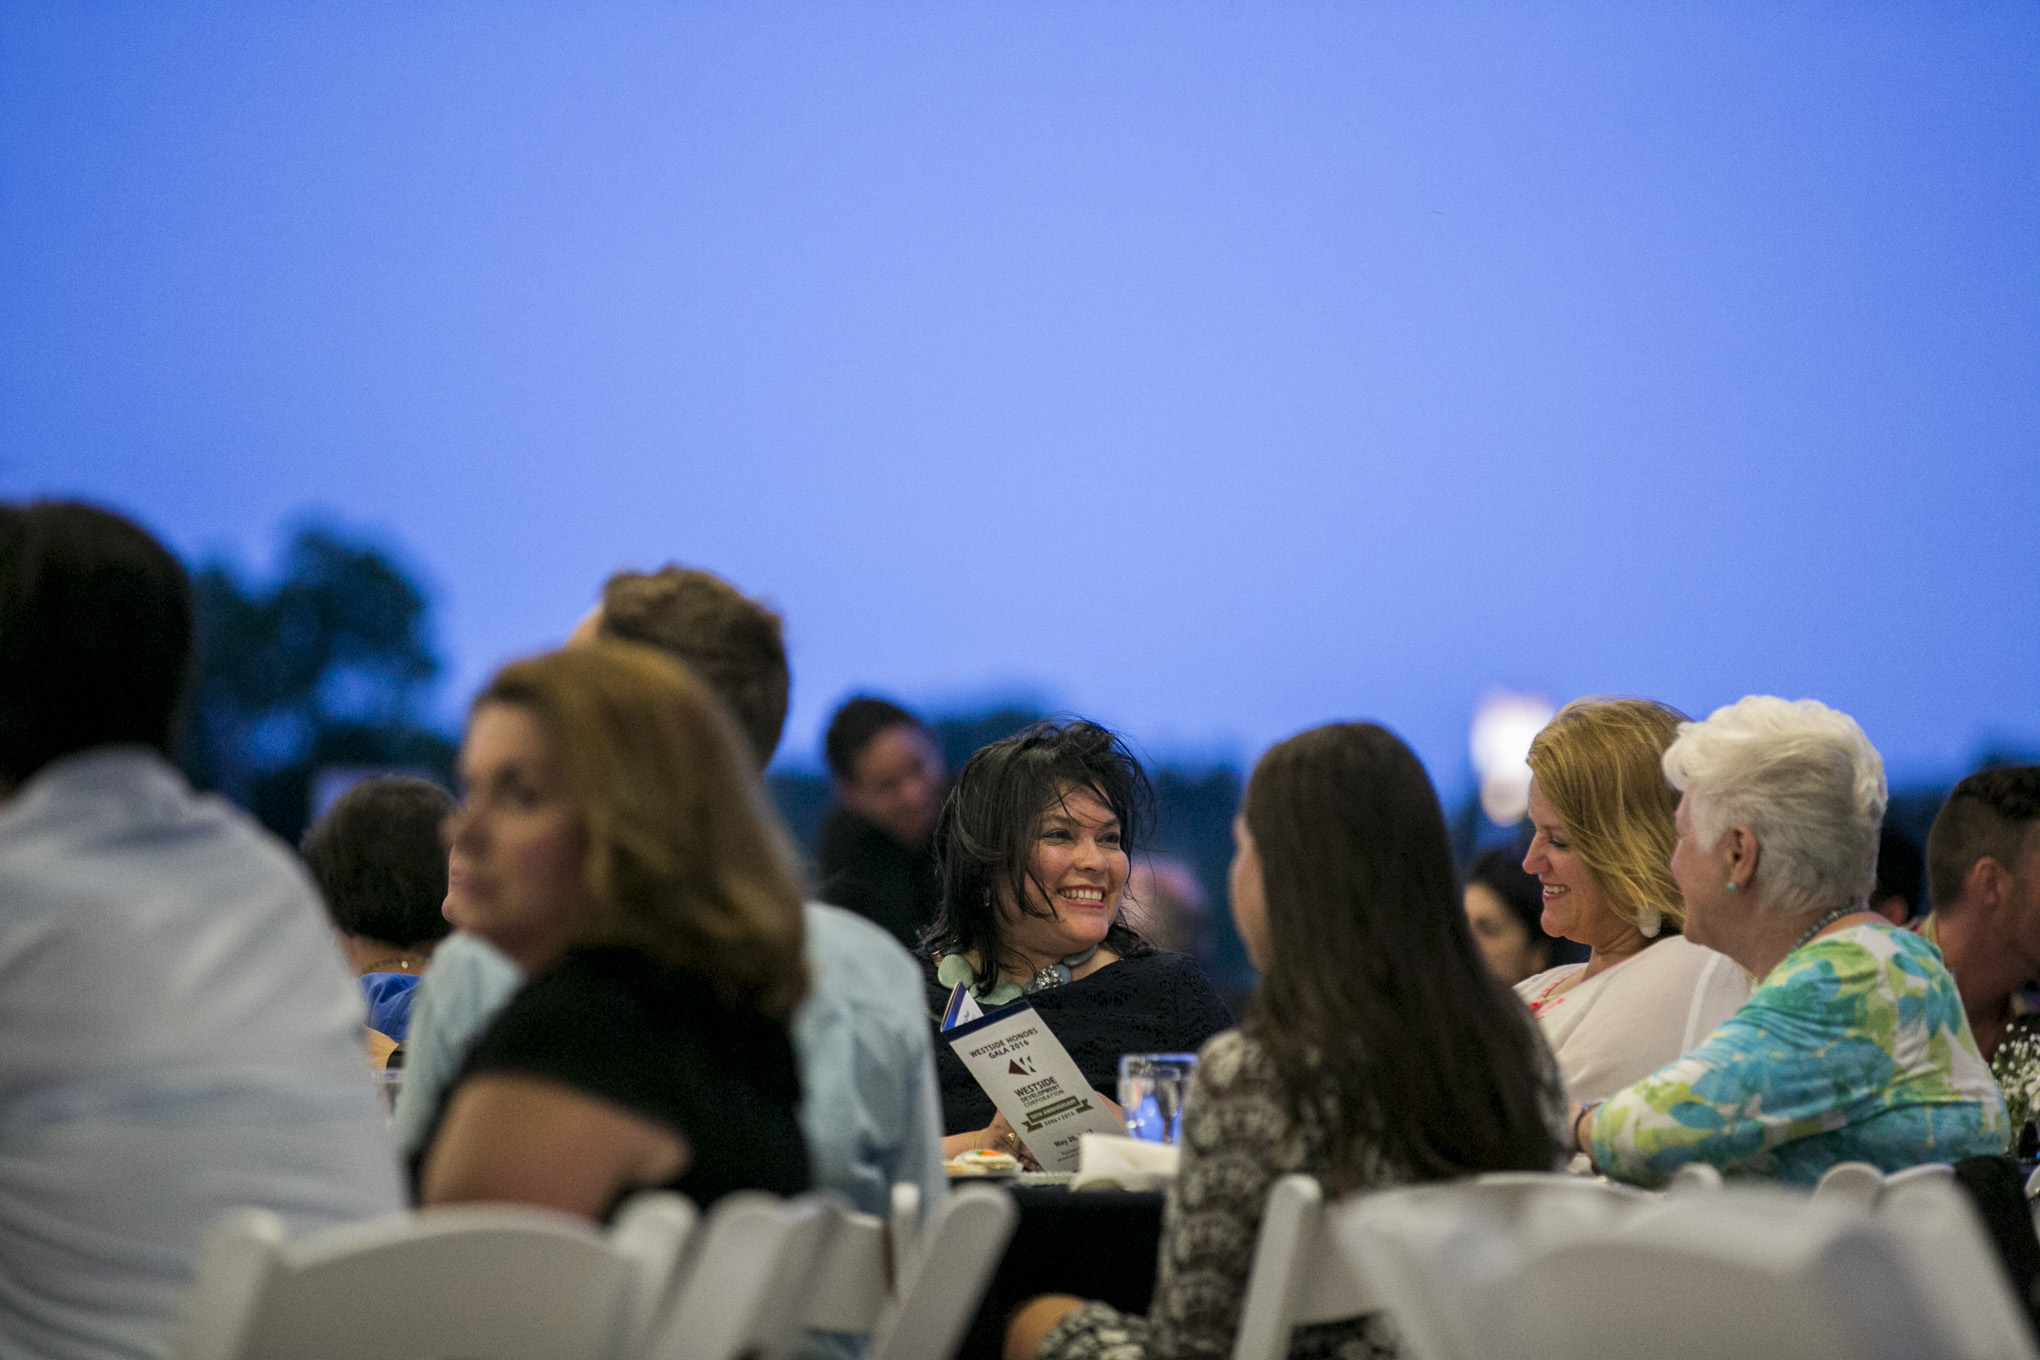 More than a hundred guest were in attendance for the Westside Development awards dinner. Photo by Kathryn Boyd-Batstone.